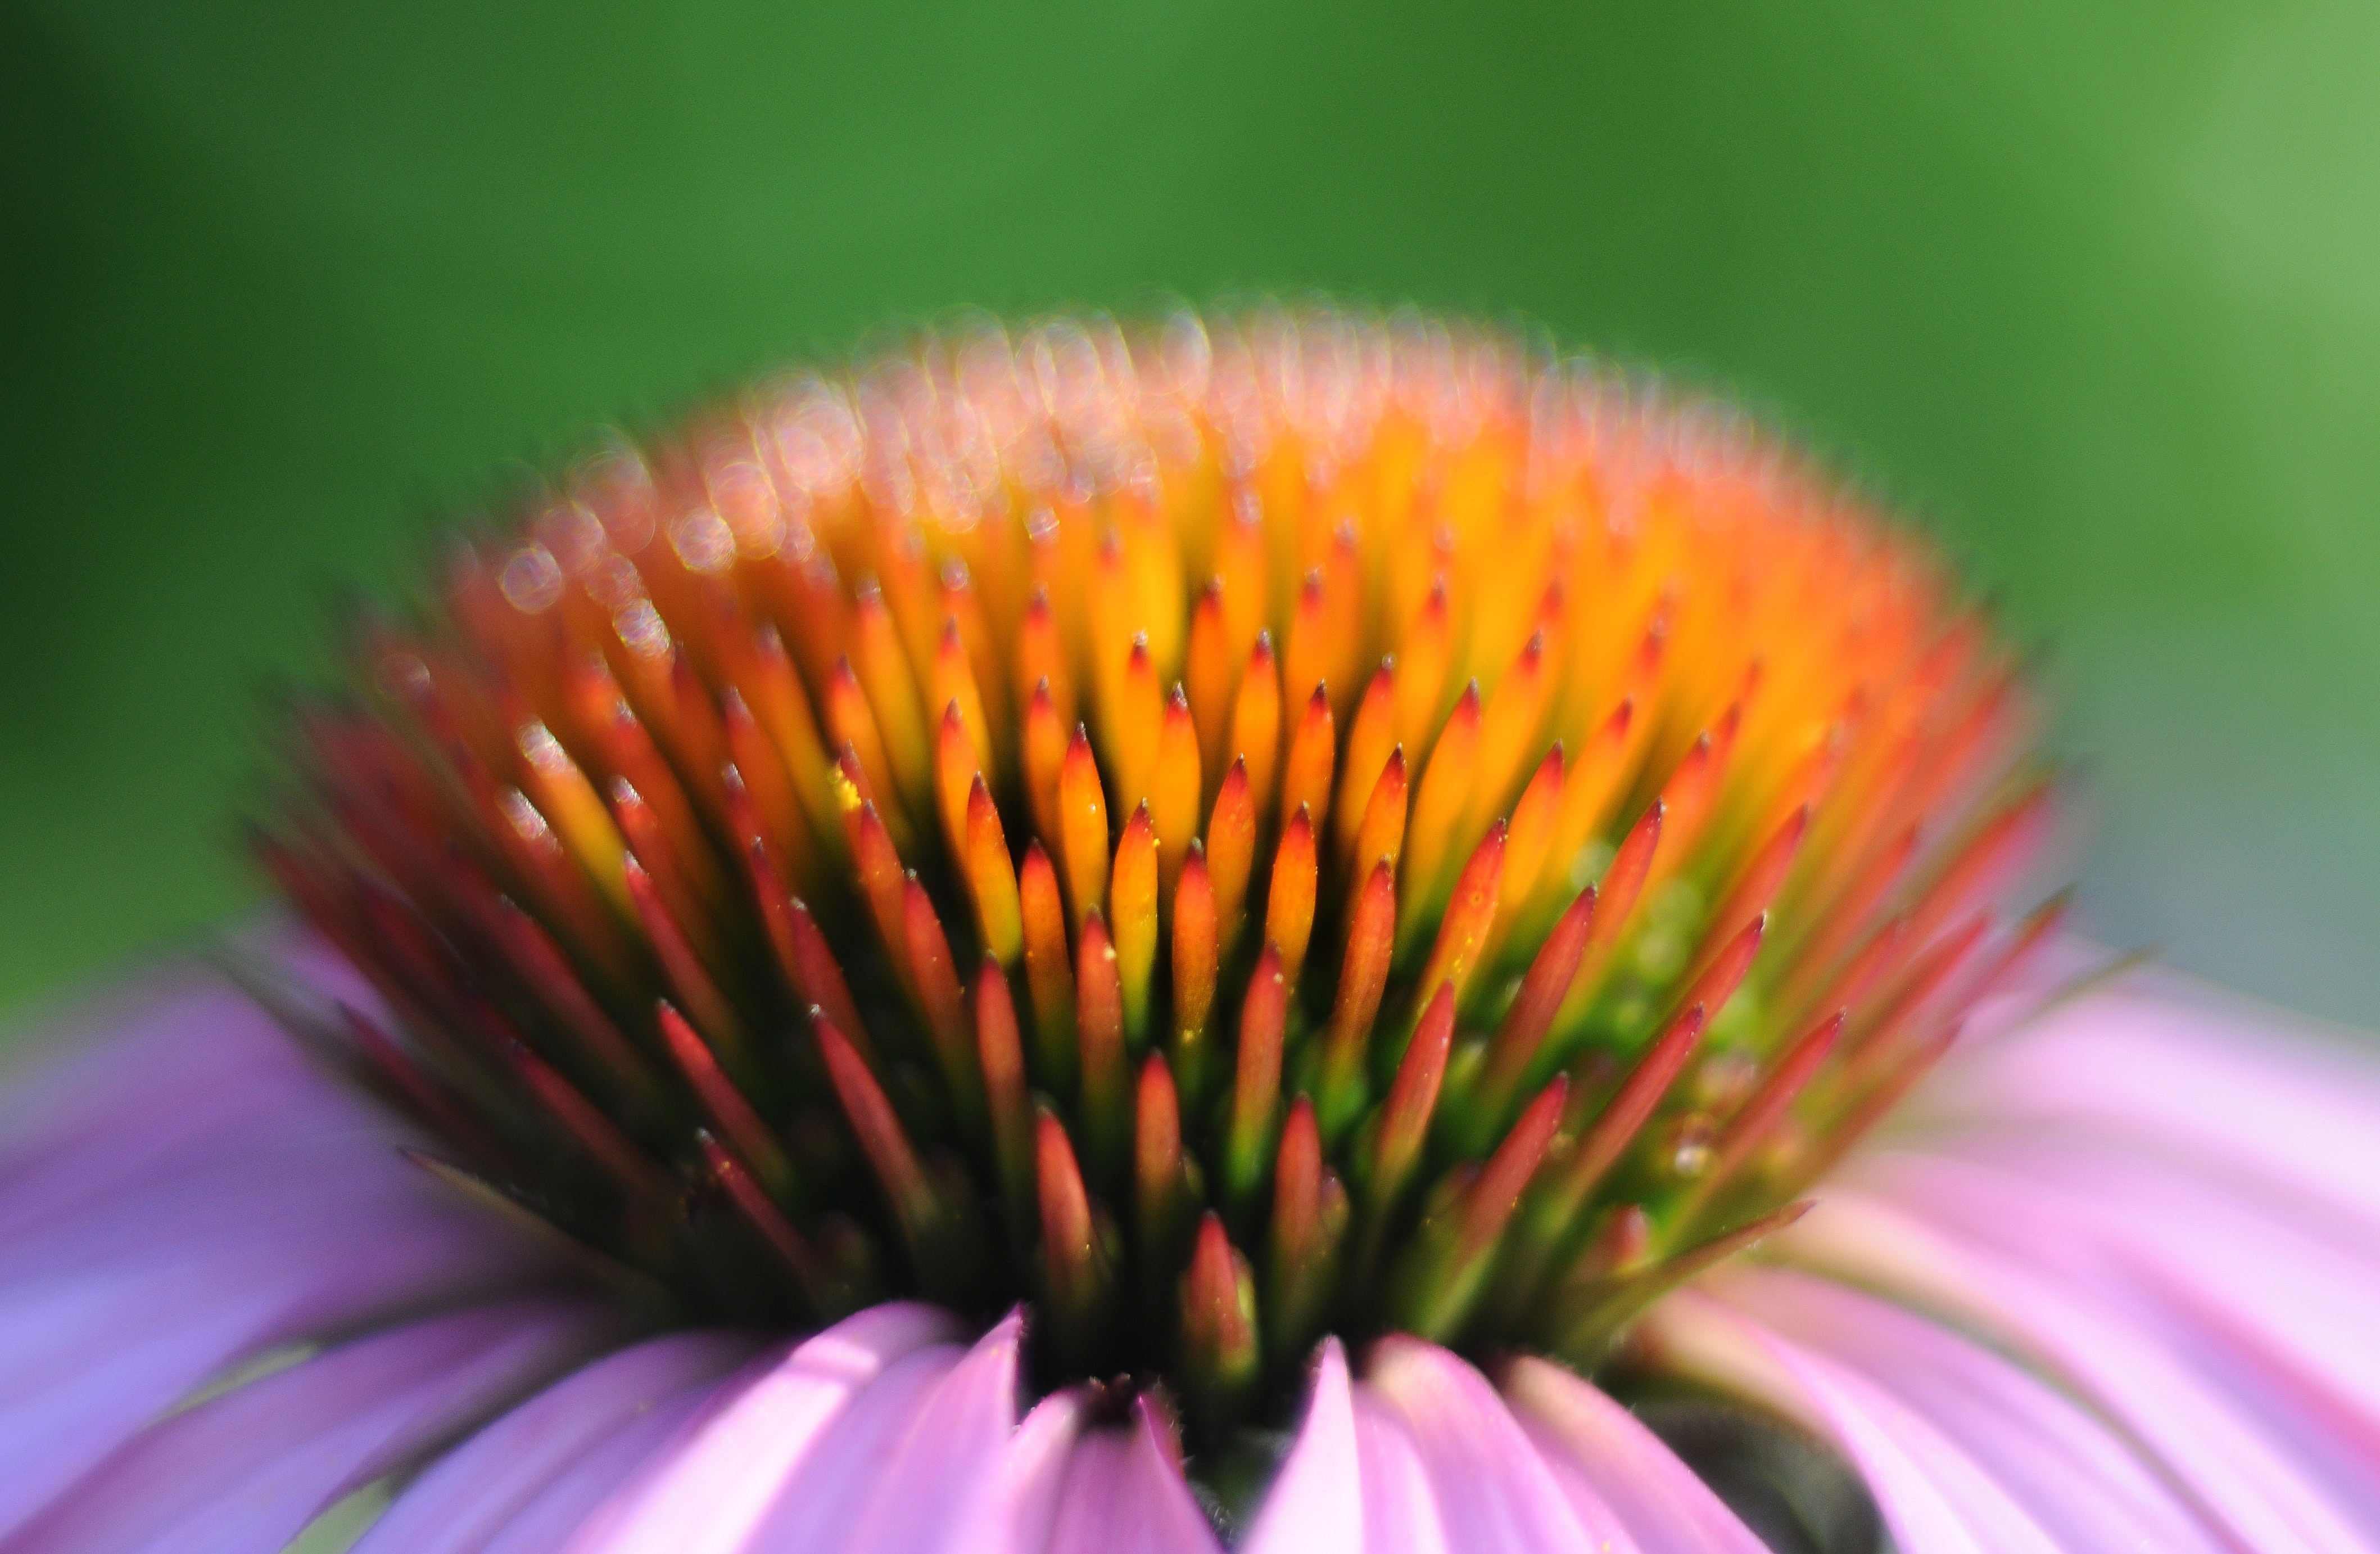 Free stock photo of botany, close to, close-up view